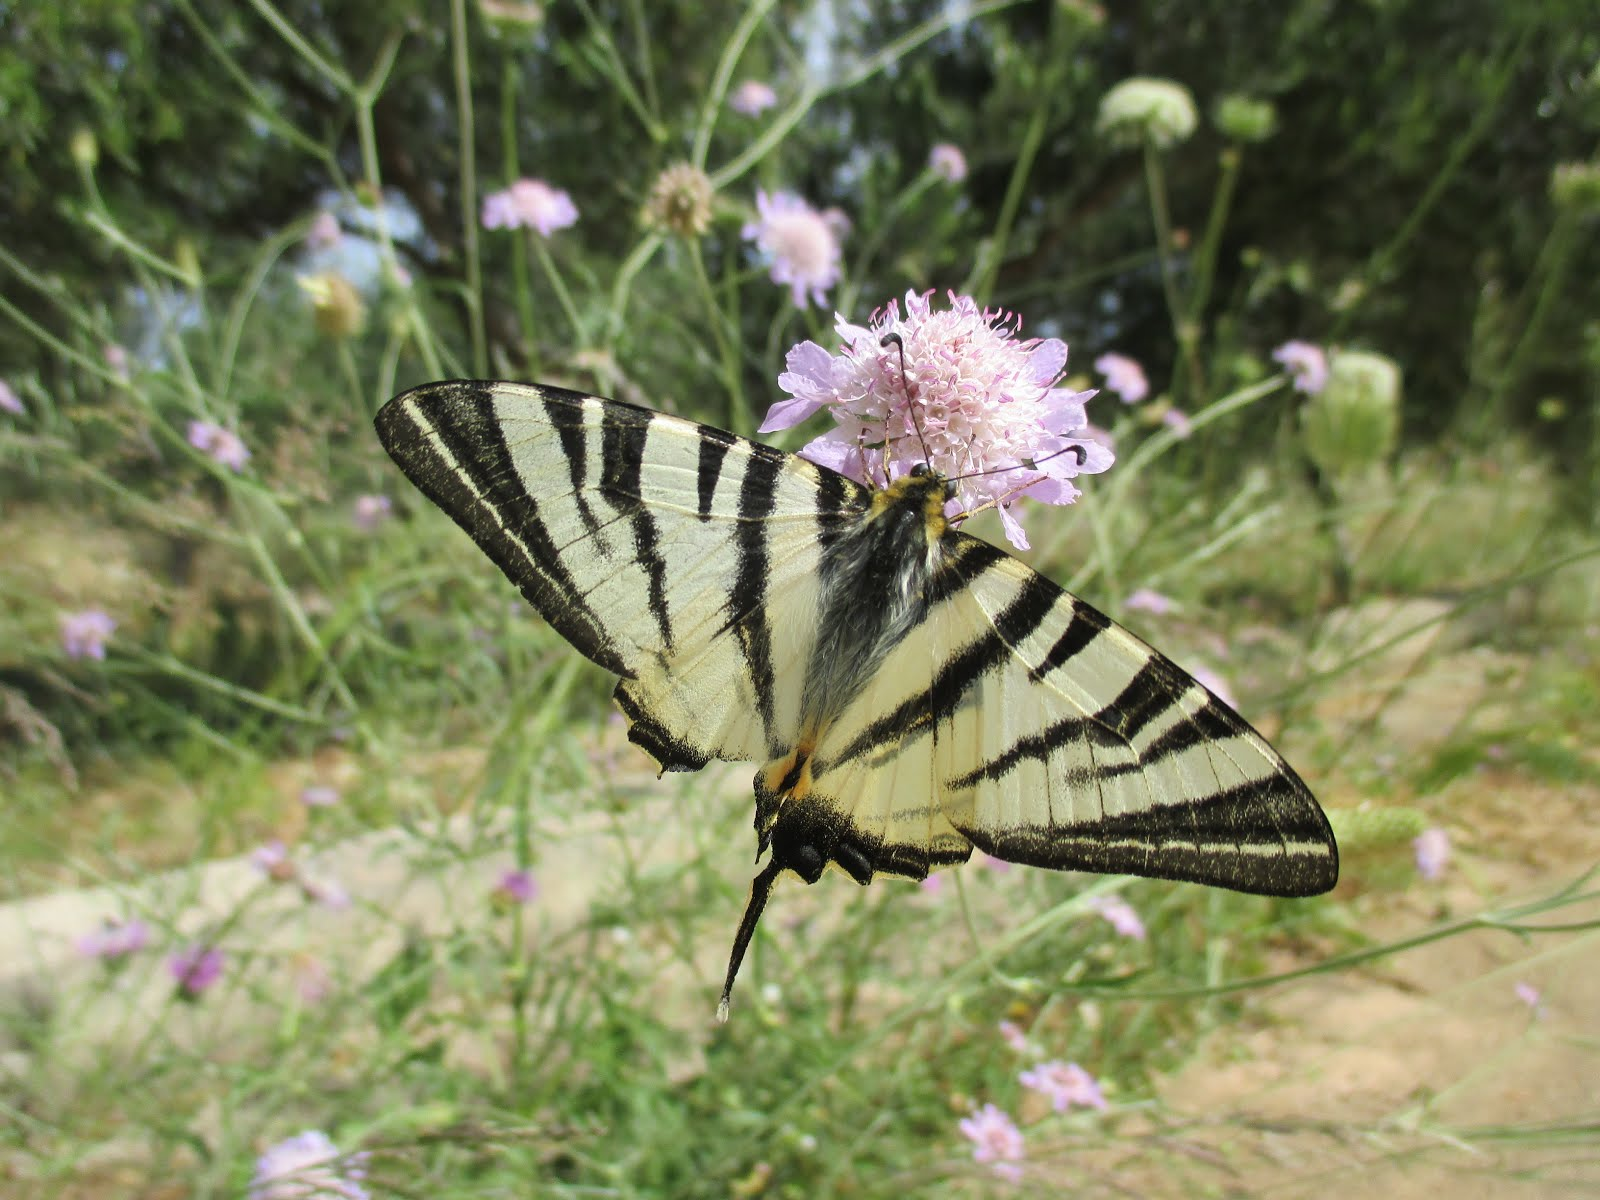 Butterfly on Flower, Chania, Crete, Spring 2015